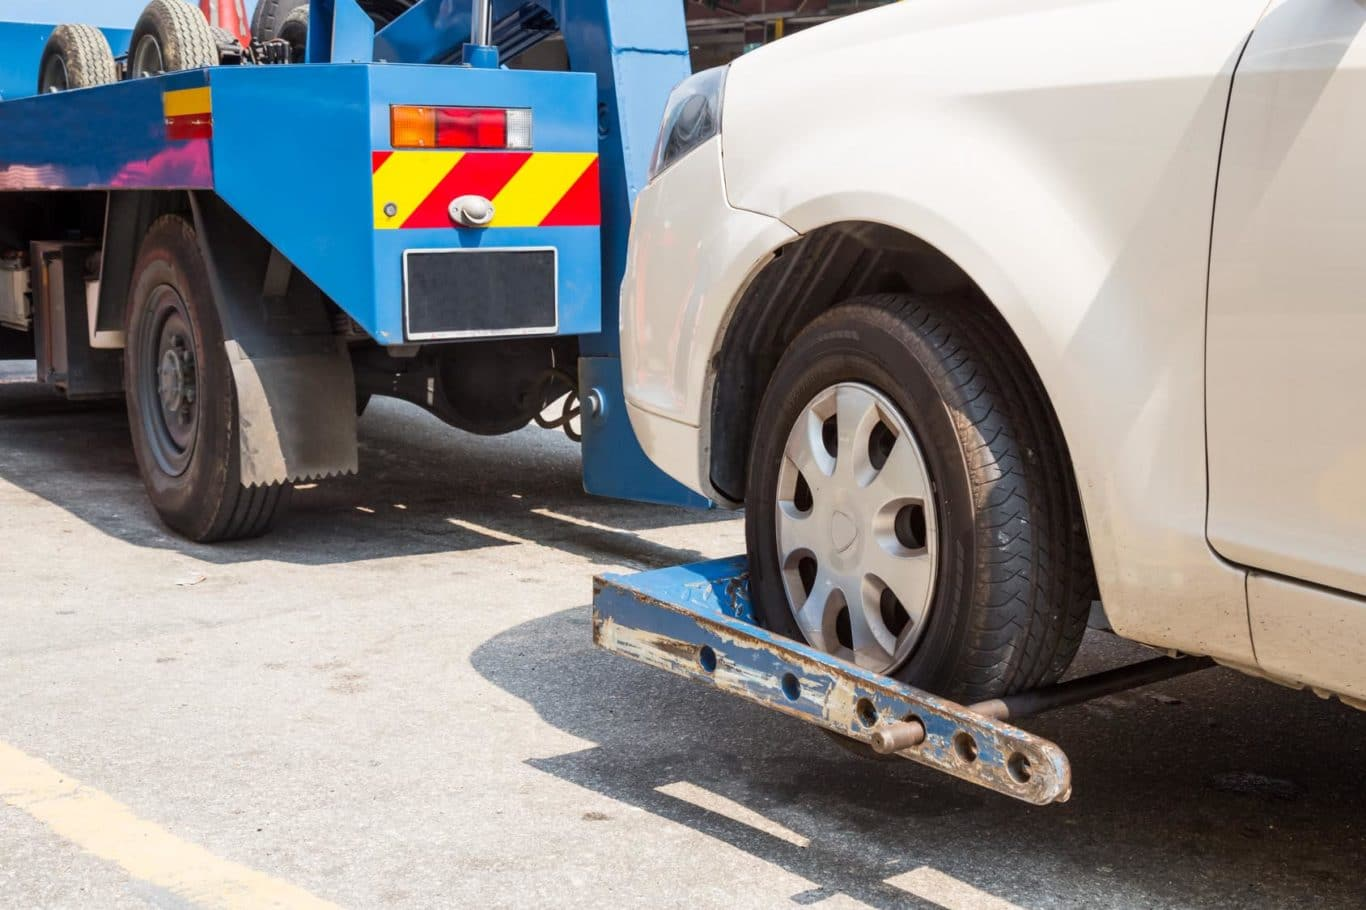 Kells, County Meath expert Car Towing services